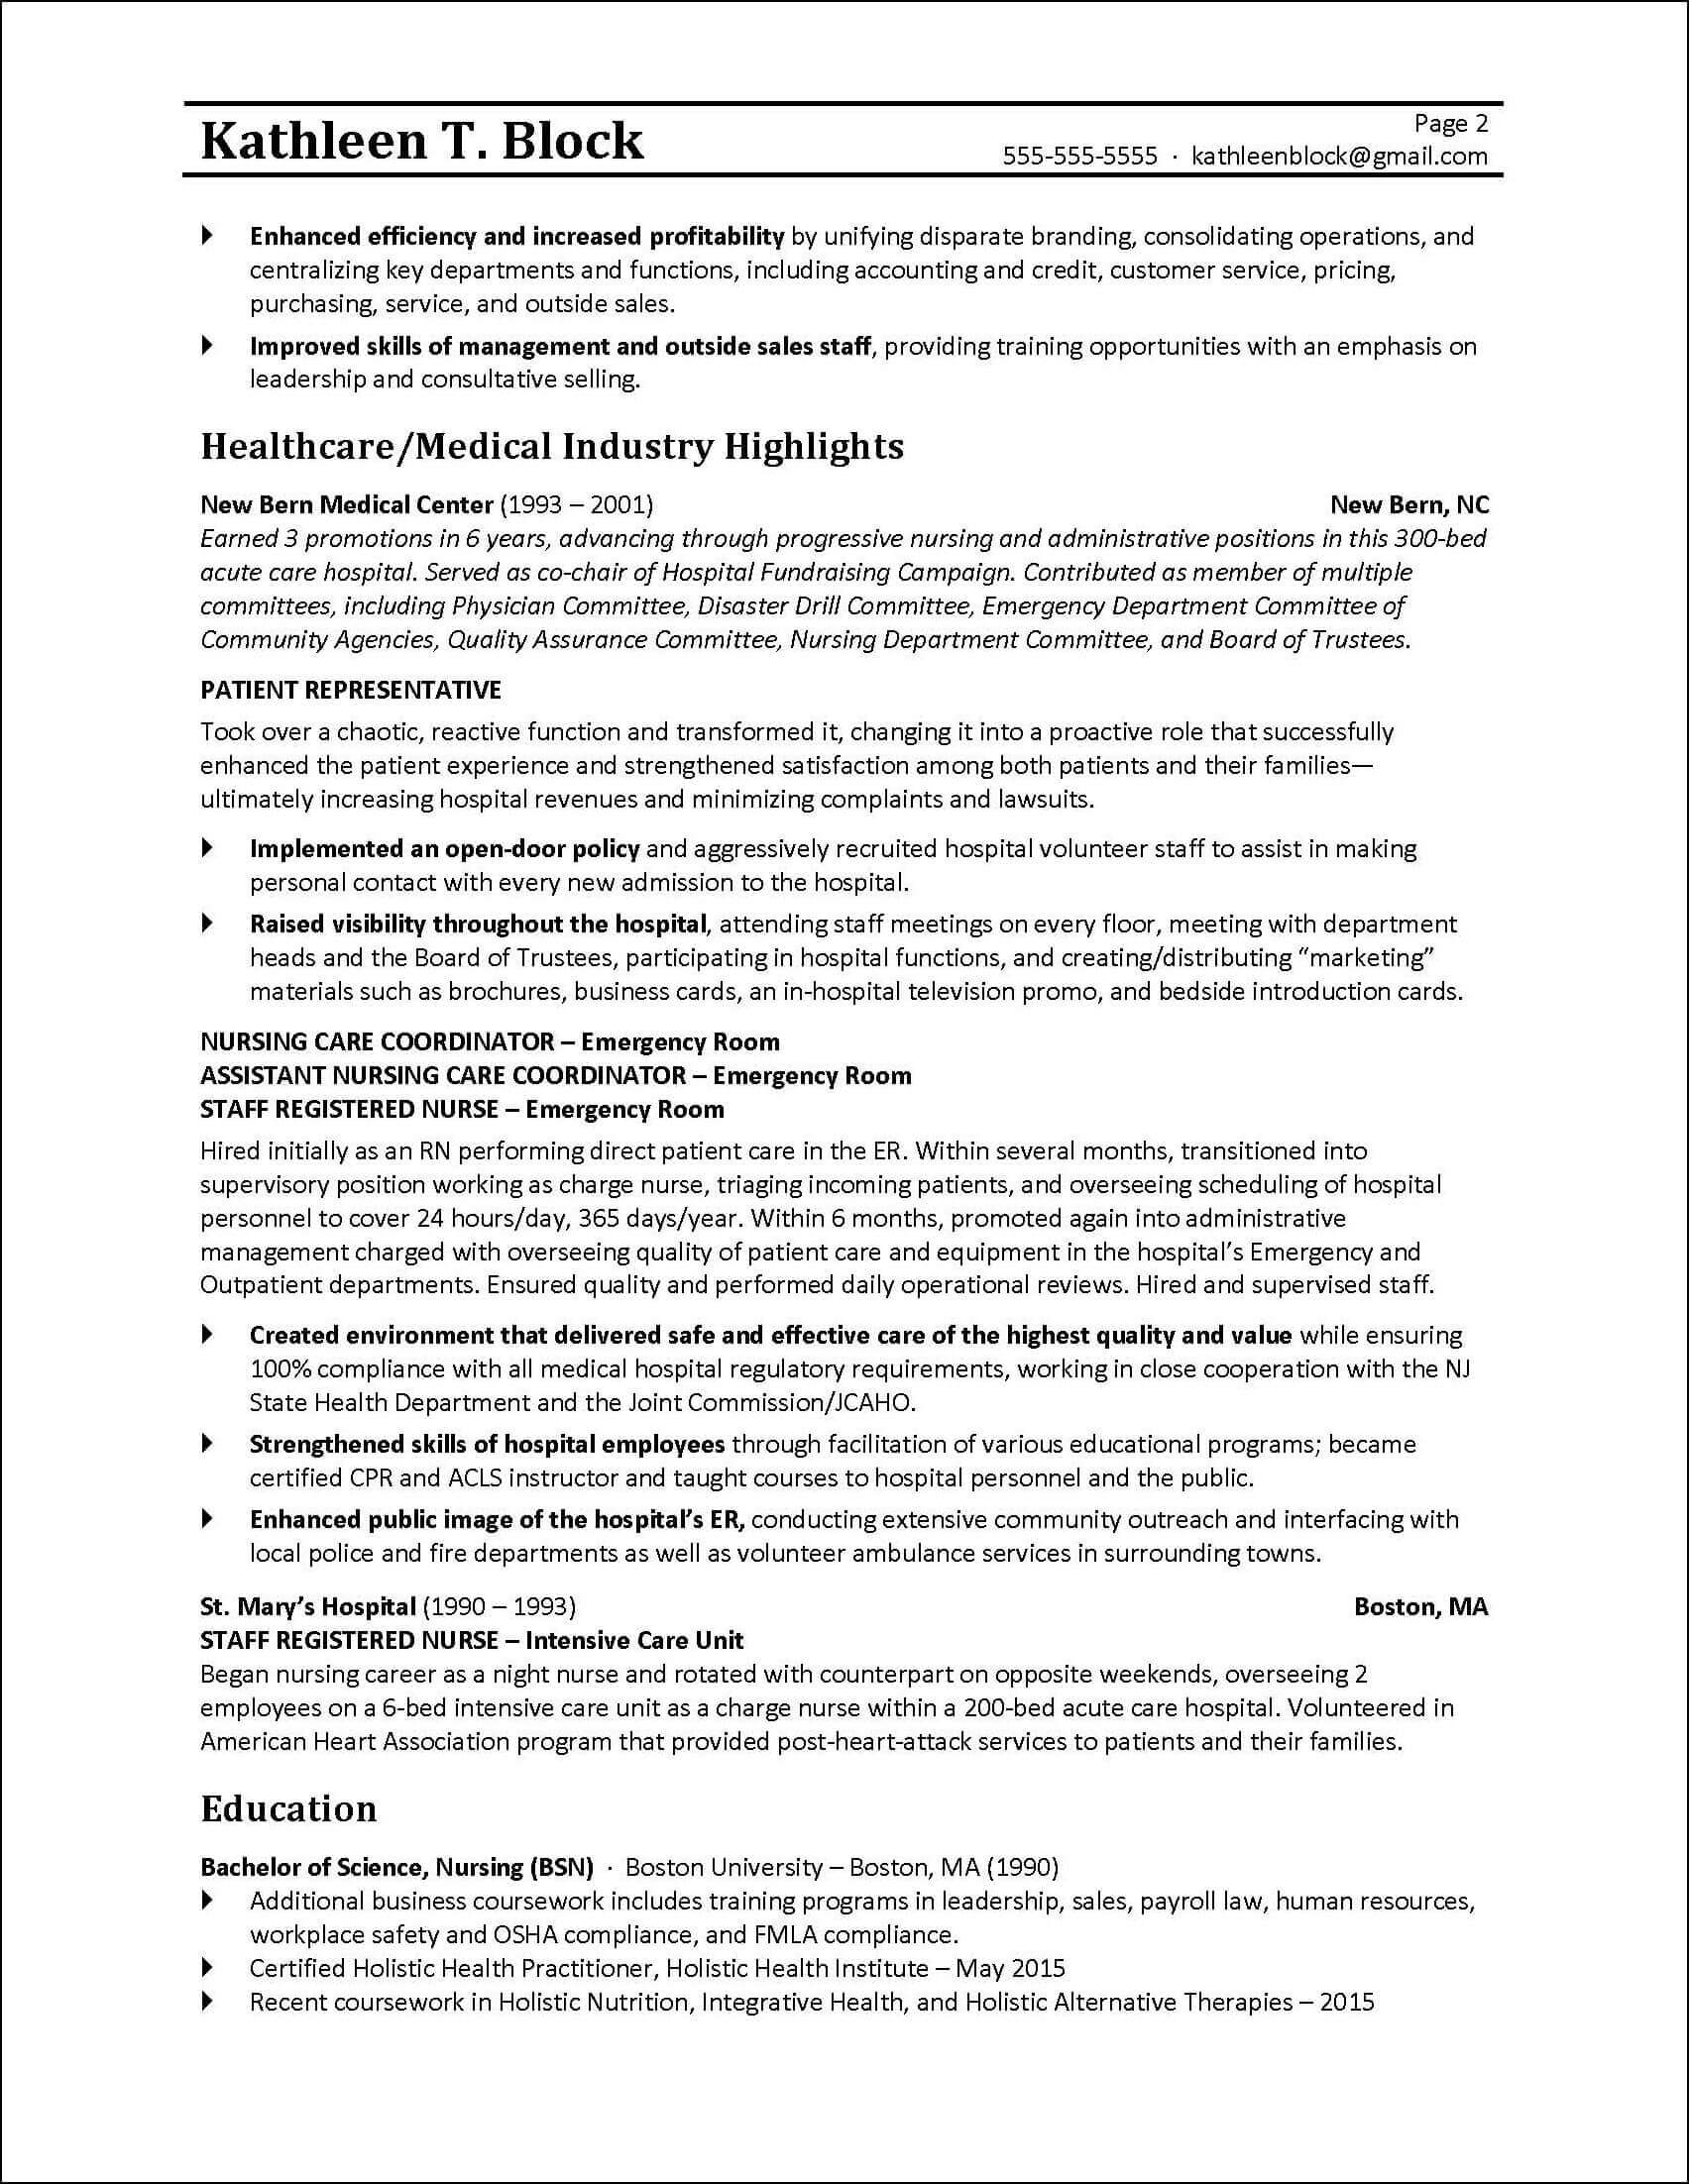 resume tips for former business owners to land corporate job owner description education Resume Business Owner Job Description Resume